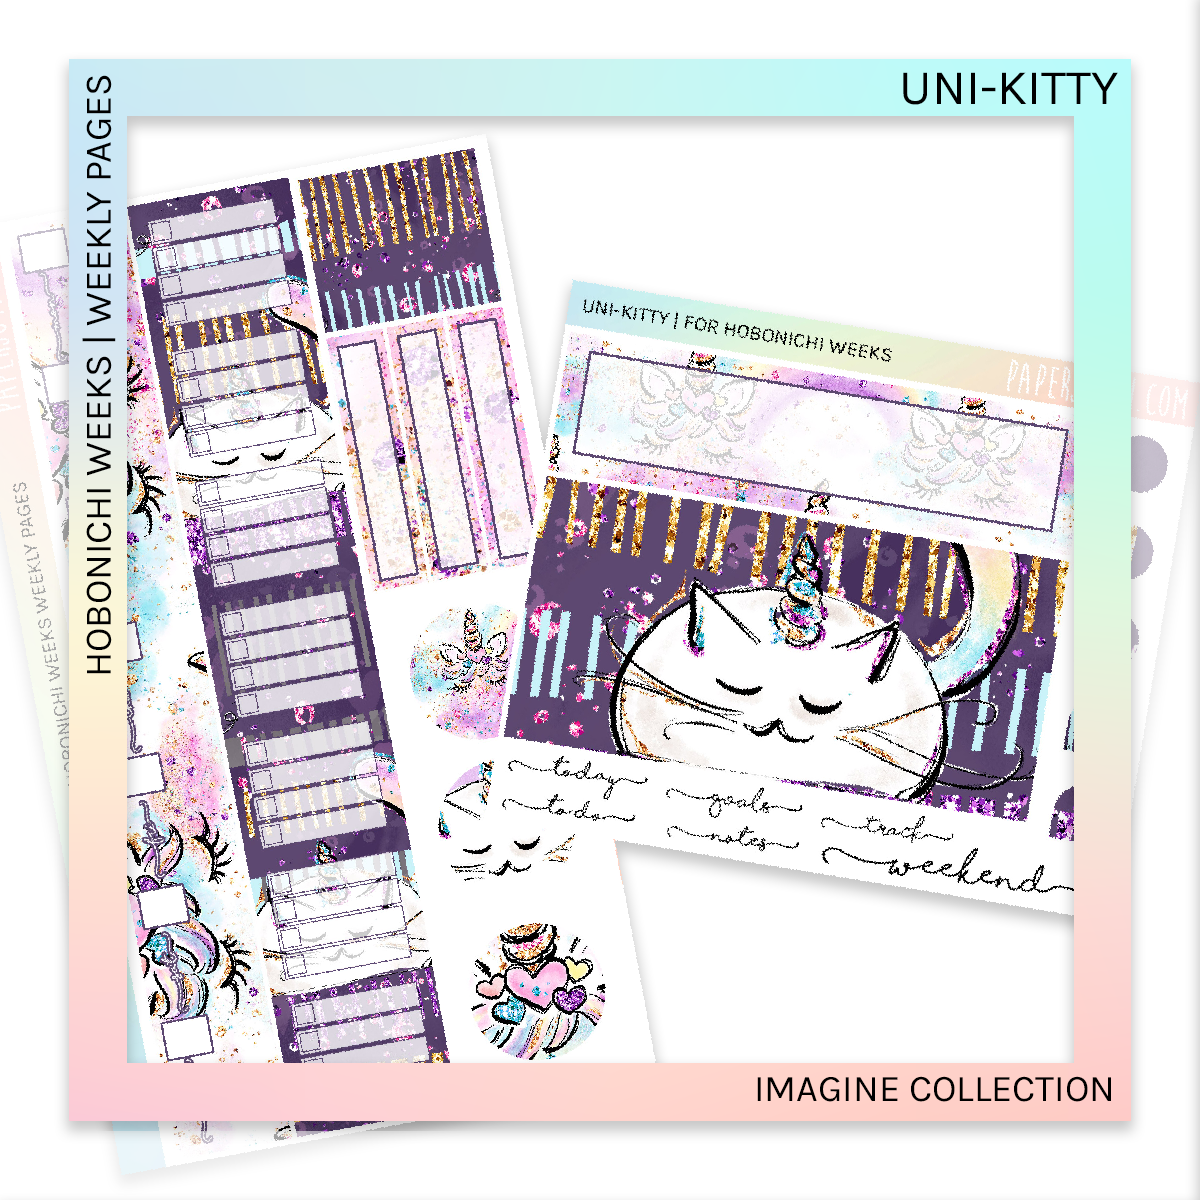 HOBONICHI WEEKS | WEEKLY PAGES | Unikitty